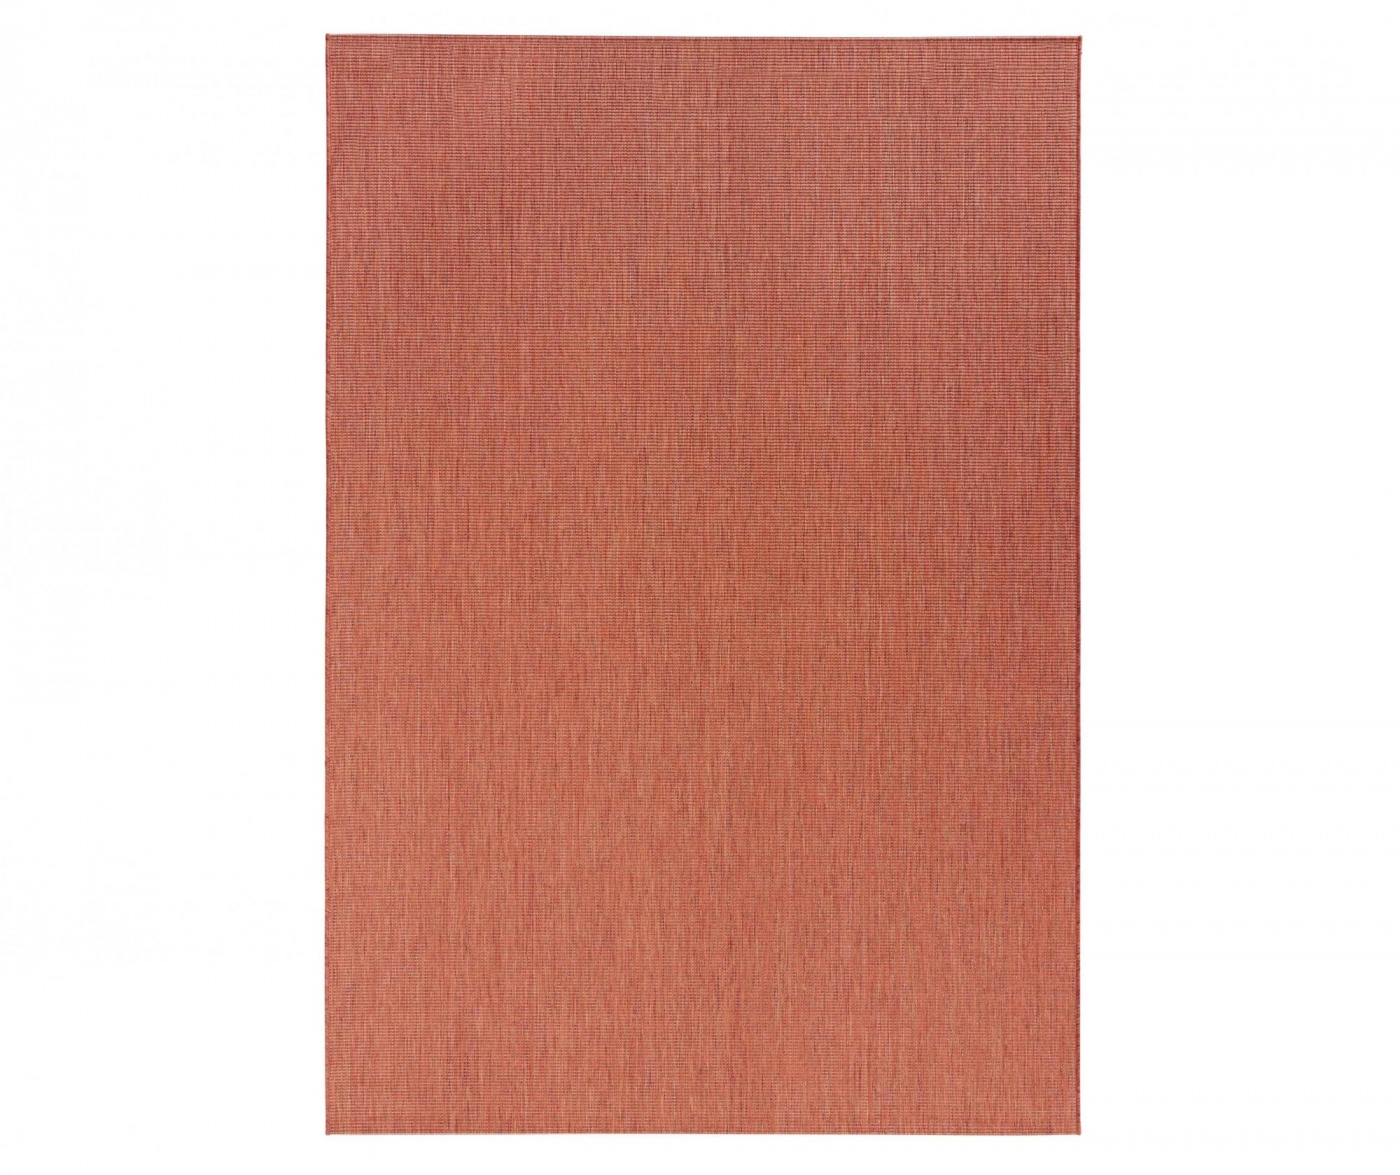 Covor de exterior Meadow Match Terracotta 80x150 cm